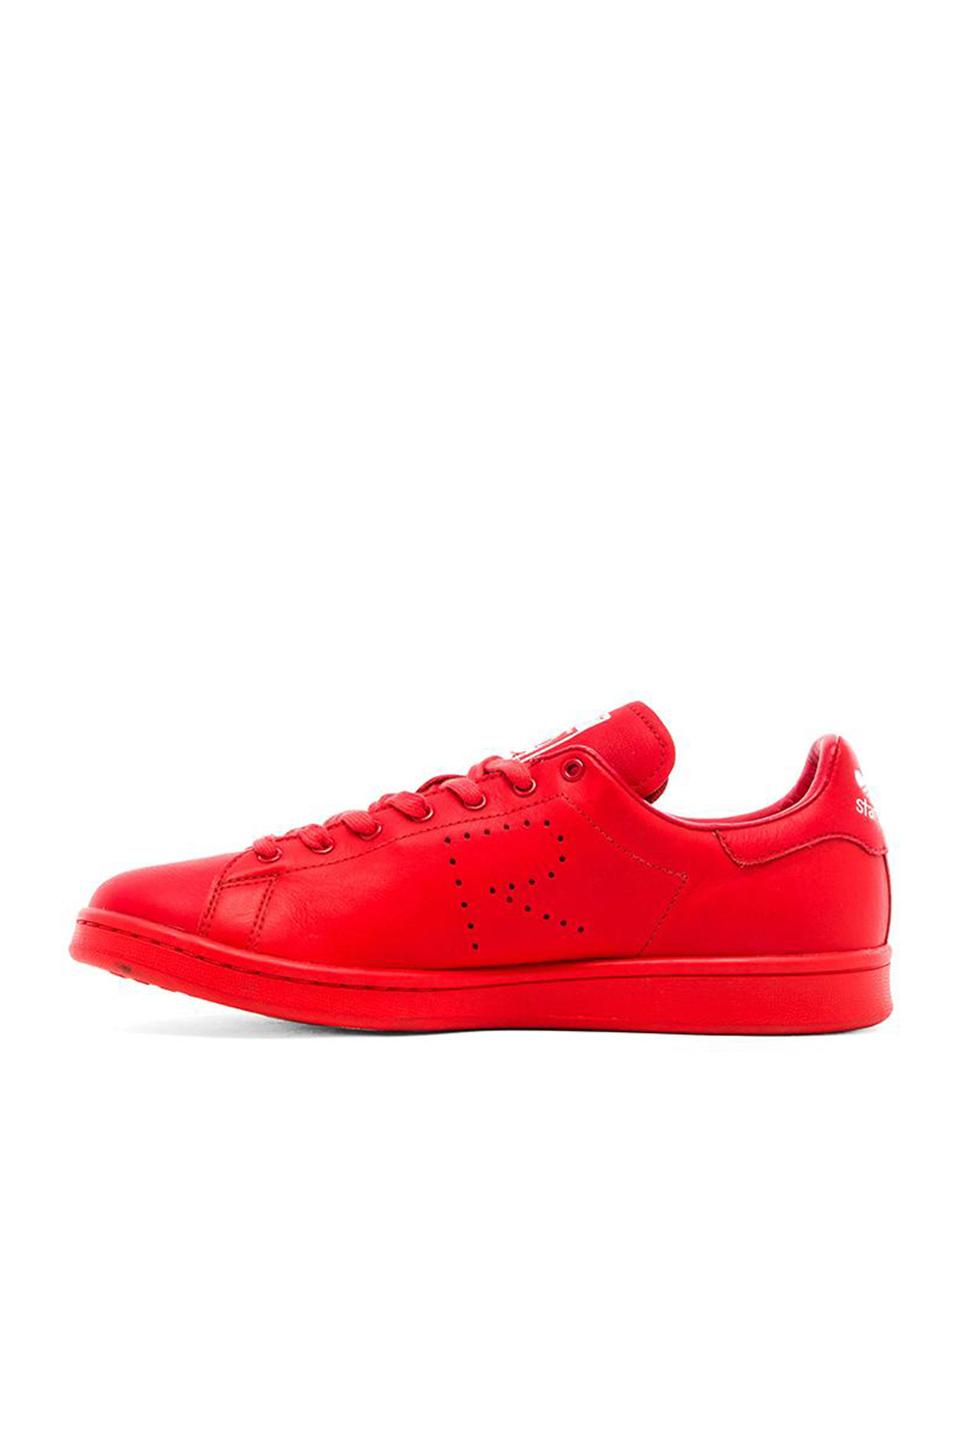 b0b51304fb4c Adidas by raf simons Stan Smith Sneakers in Red for Men